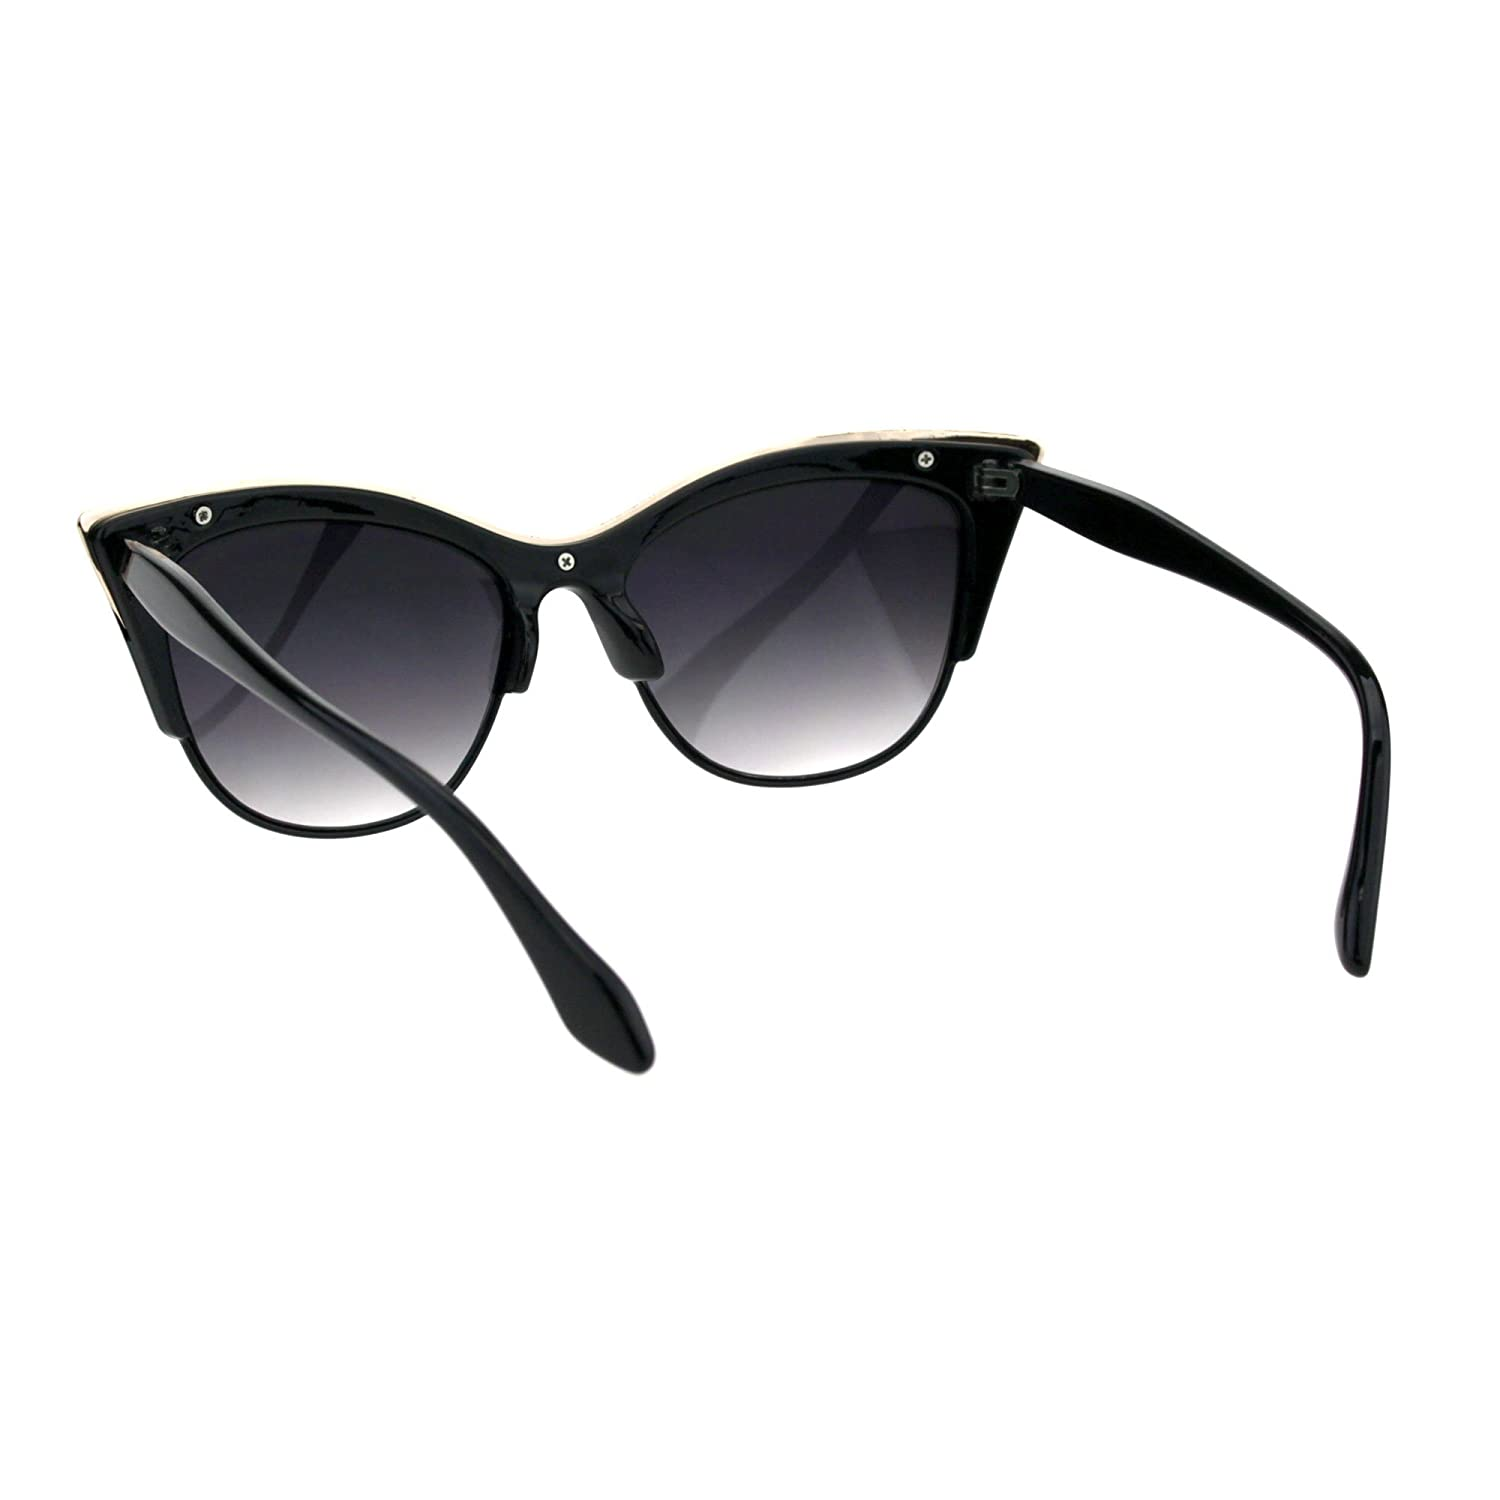 01a9ccd00044 Amazon.com: SA106¨ Womens High Point Squared Half Rim Look Cat Eye  Sunglasses (Black, 53): Clothing